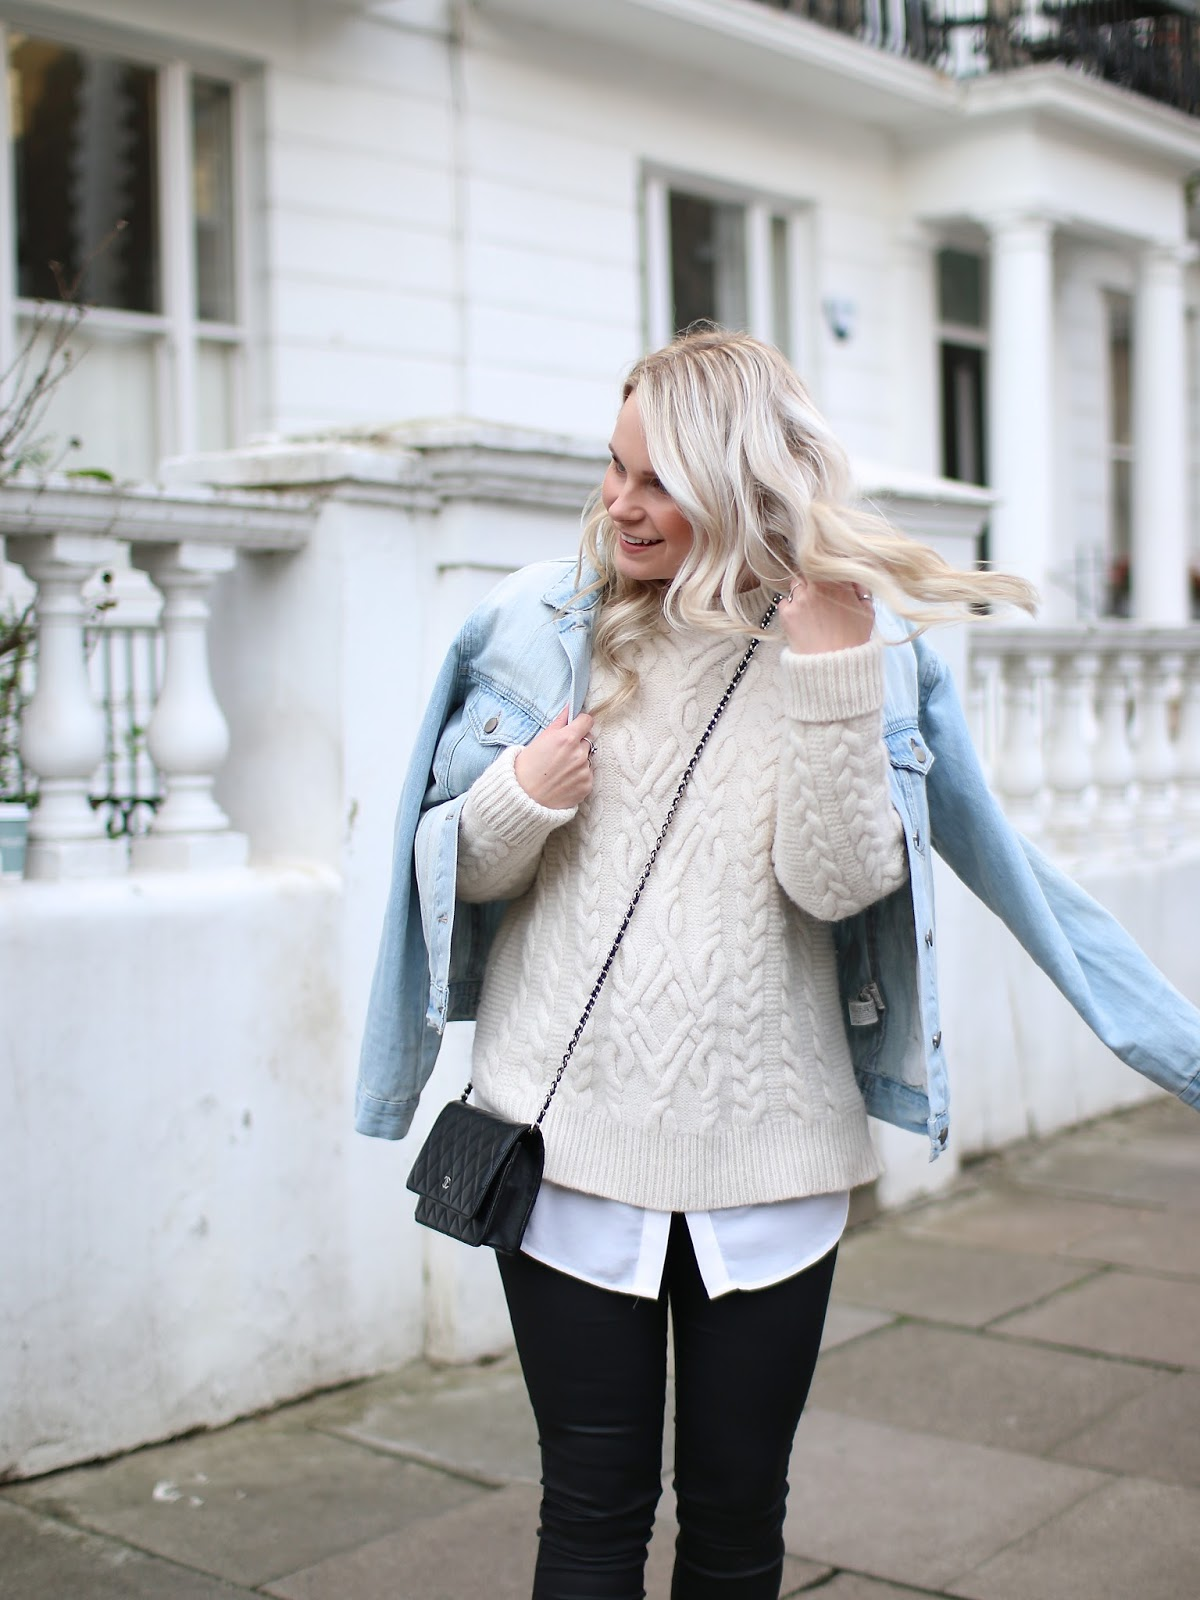 how to add layers to an outfit without looking bulky